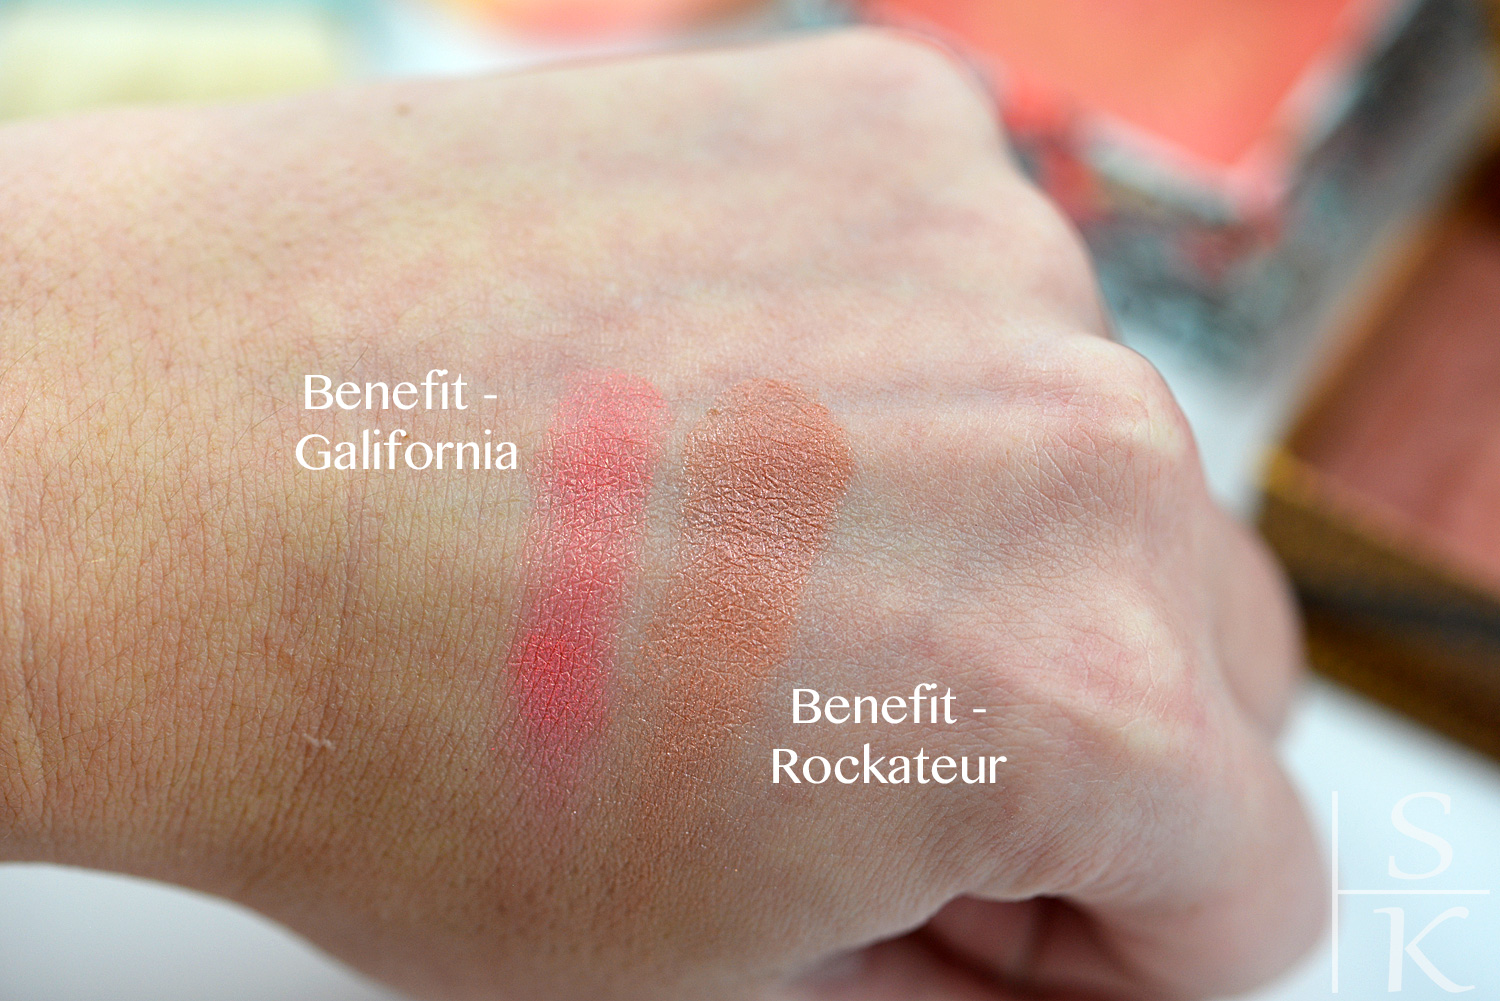 Benefit - Galifornia